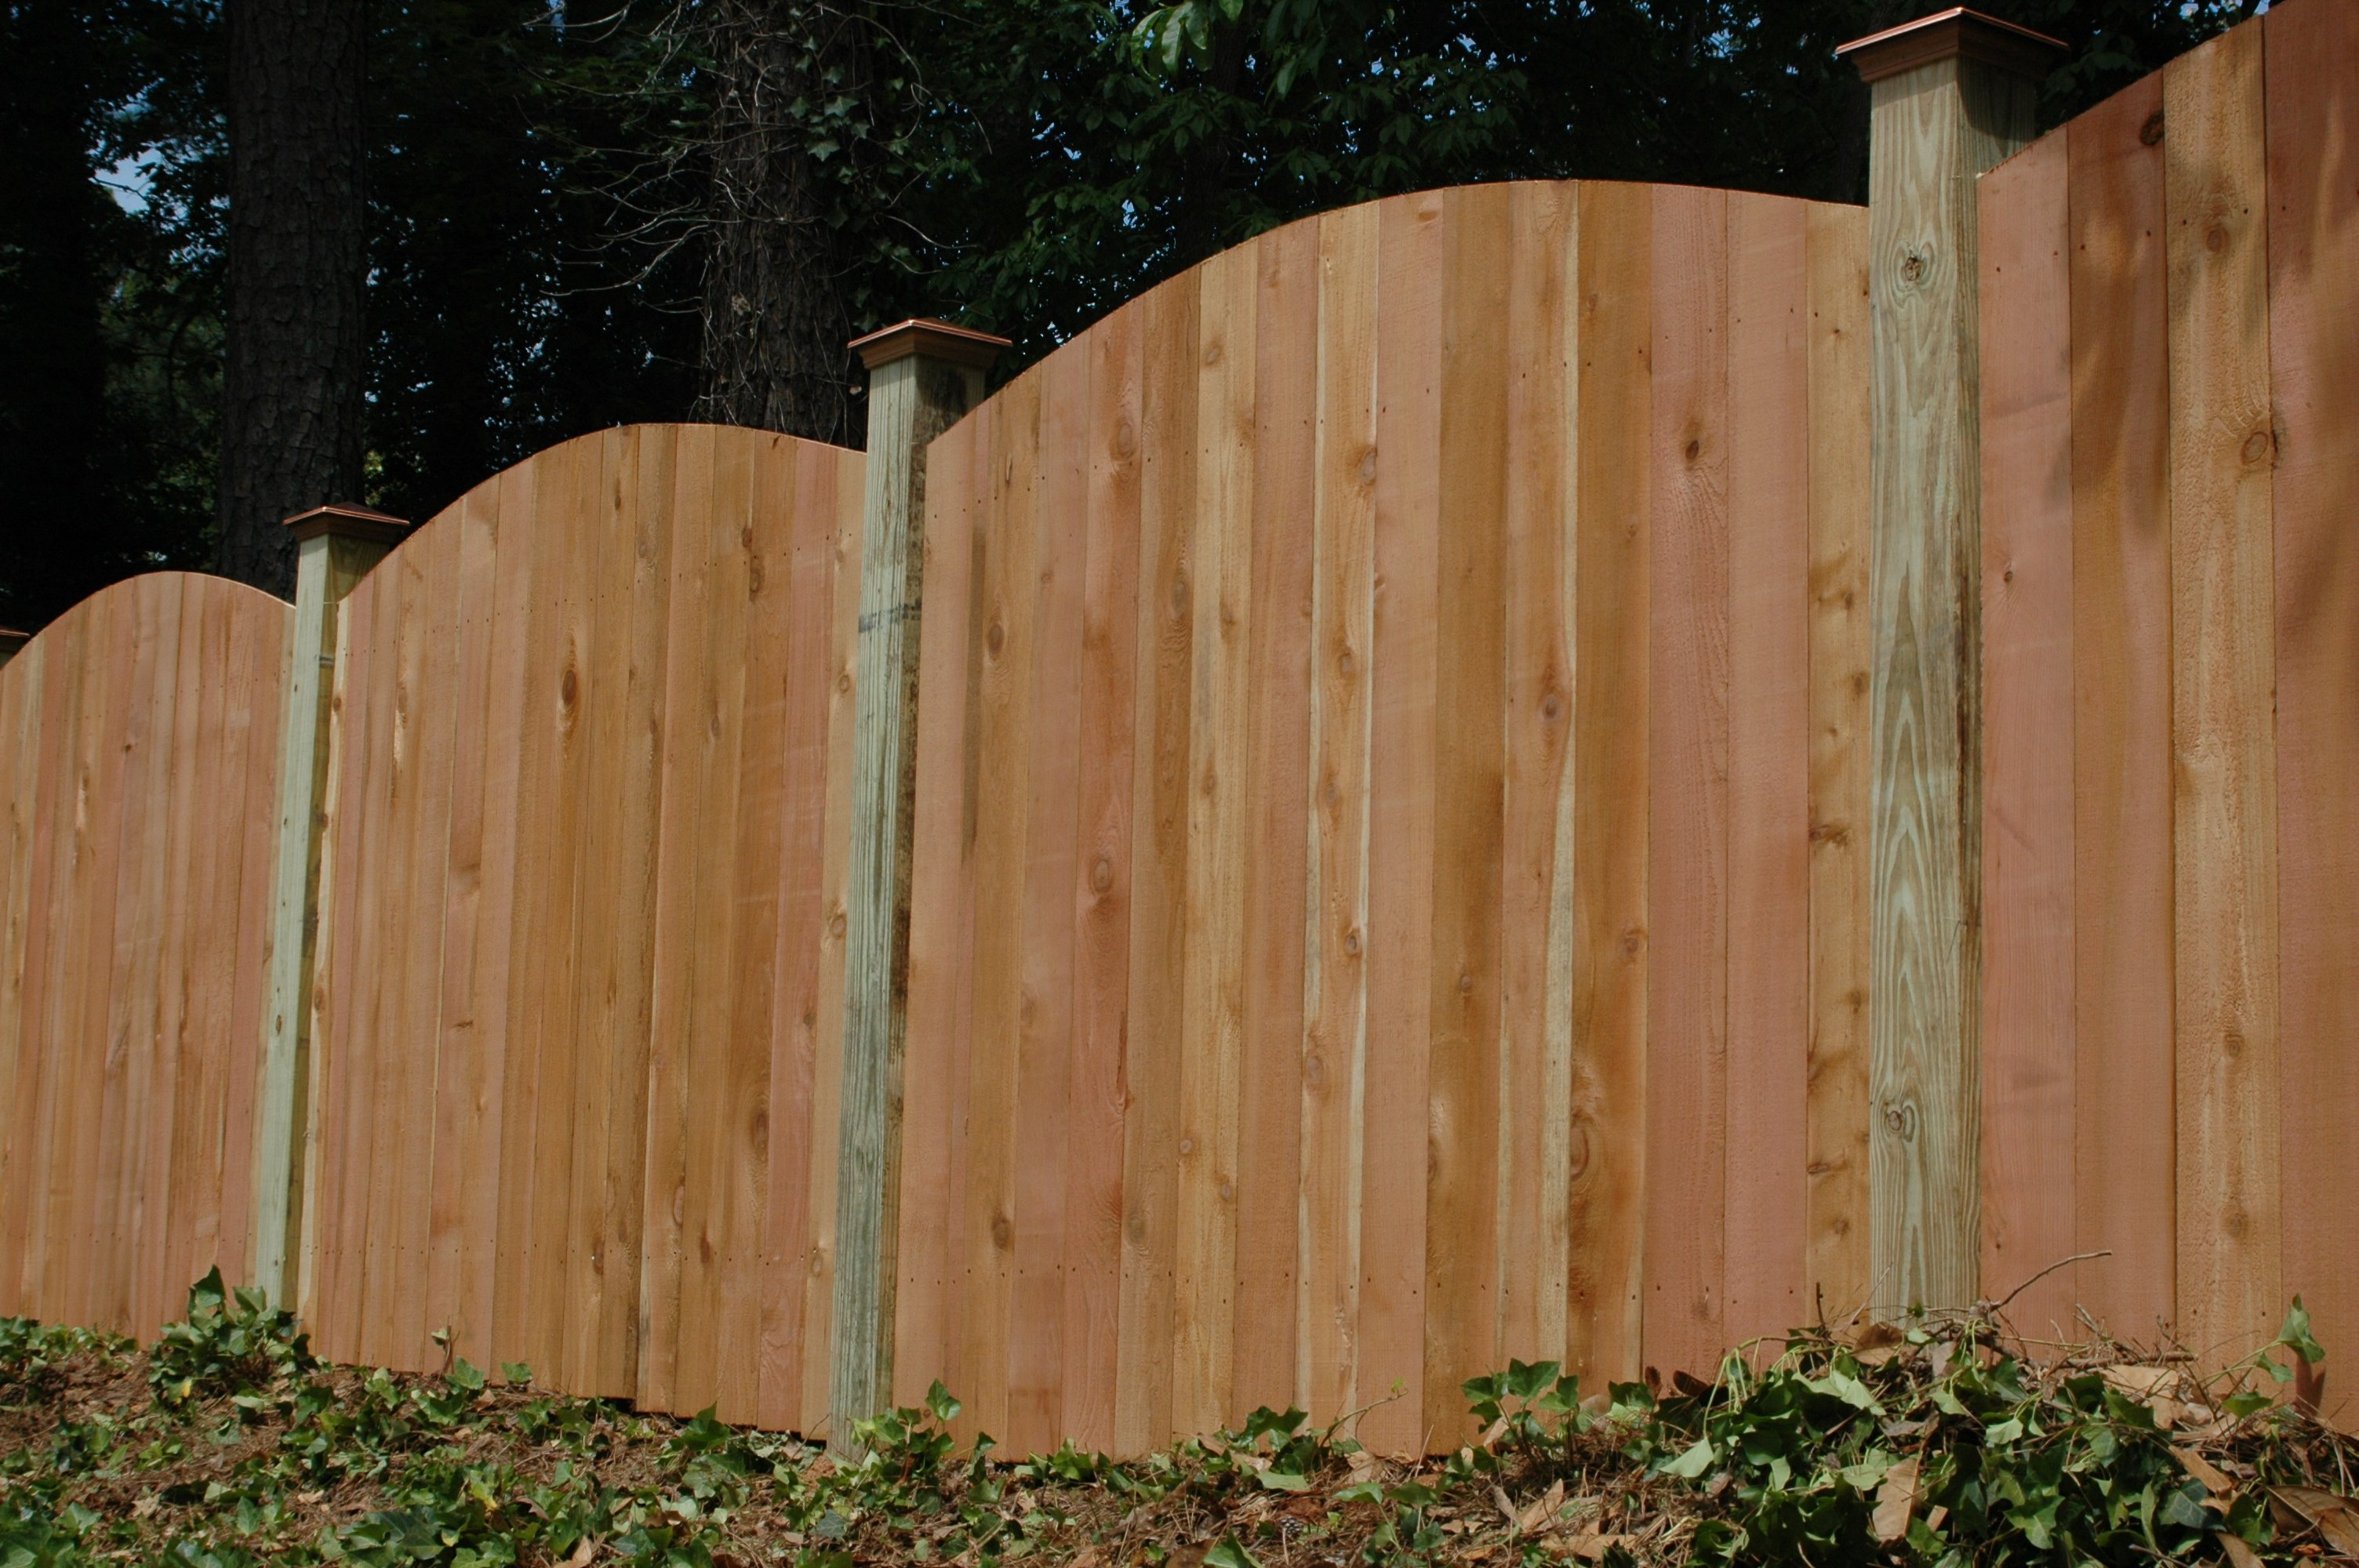 Residential - Allied Fence on wooden decks for homes, wooden floor designs for homes, wooden ceiling designs for homes, small house plans for homes, brick fence designs for homes, security fence designs for homes, wooden window designs for homes, wooden staircase designs for homes,